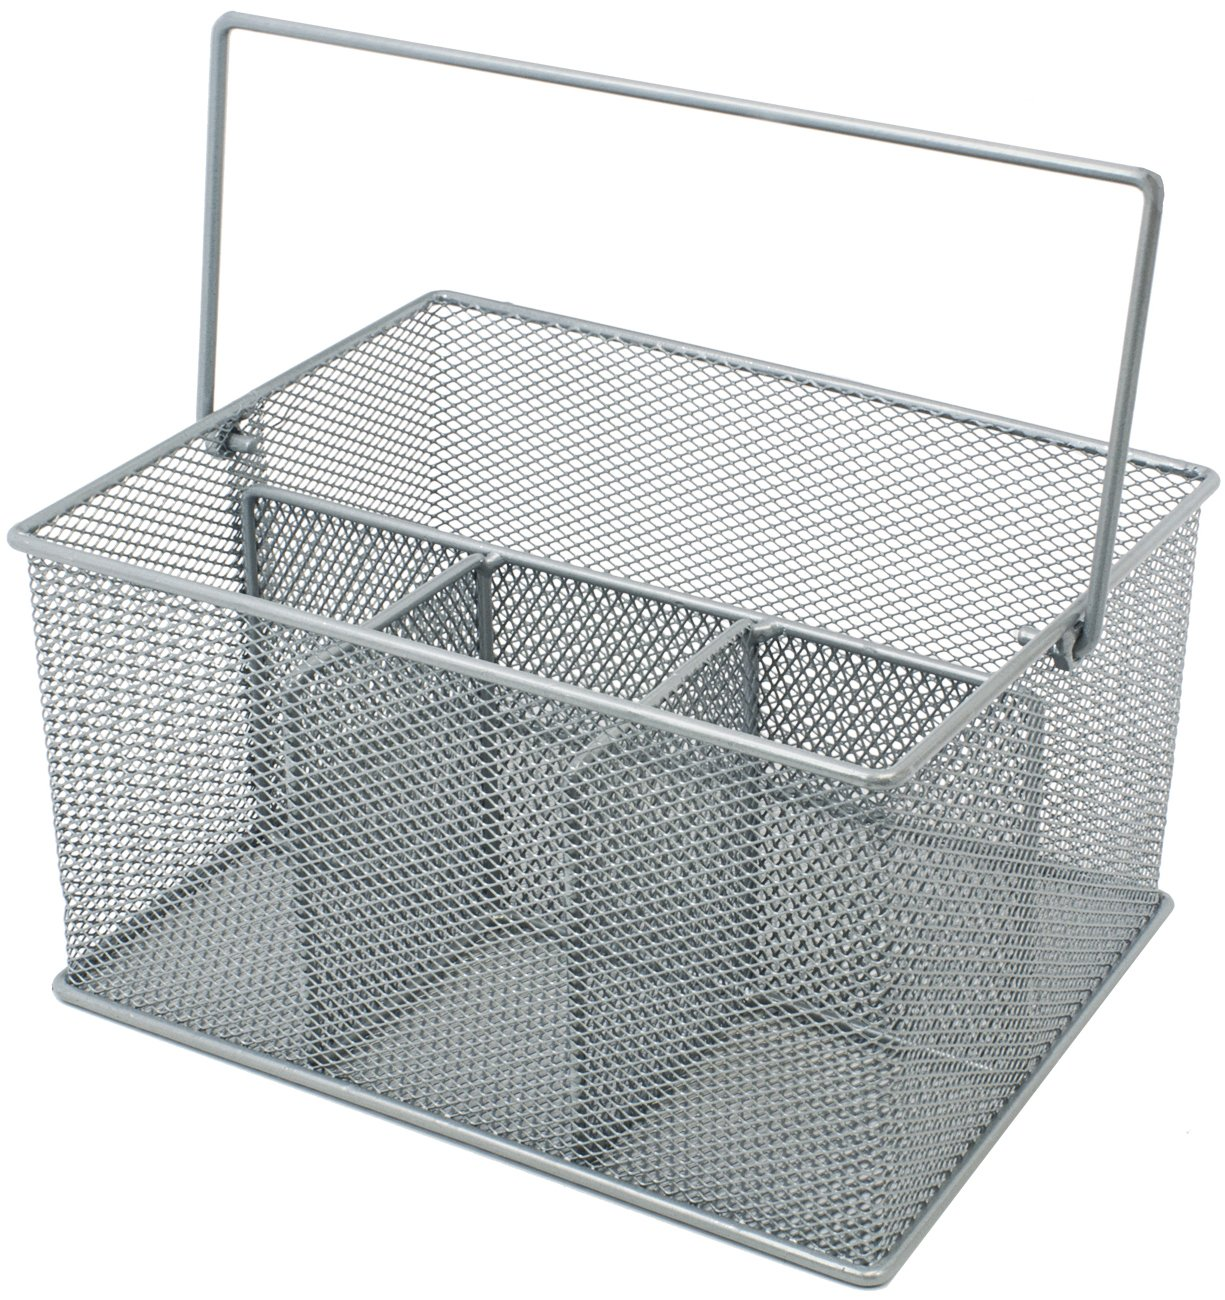 Sorbus Utensil Caddy — Silverware, Napkin Holder, and Condiment Organizer — Multi-Purpose Steel Mesh Caddy—Ideal for Kitchen, Dining, Entertaining, Tailgating, Picnics, and Much More (Silver)